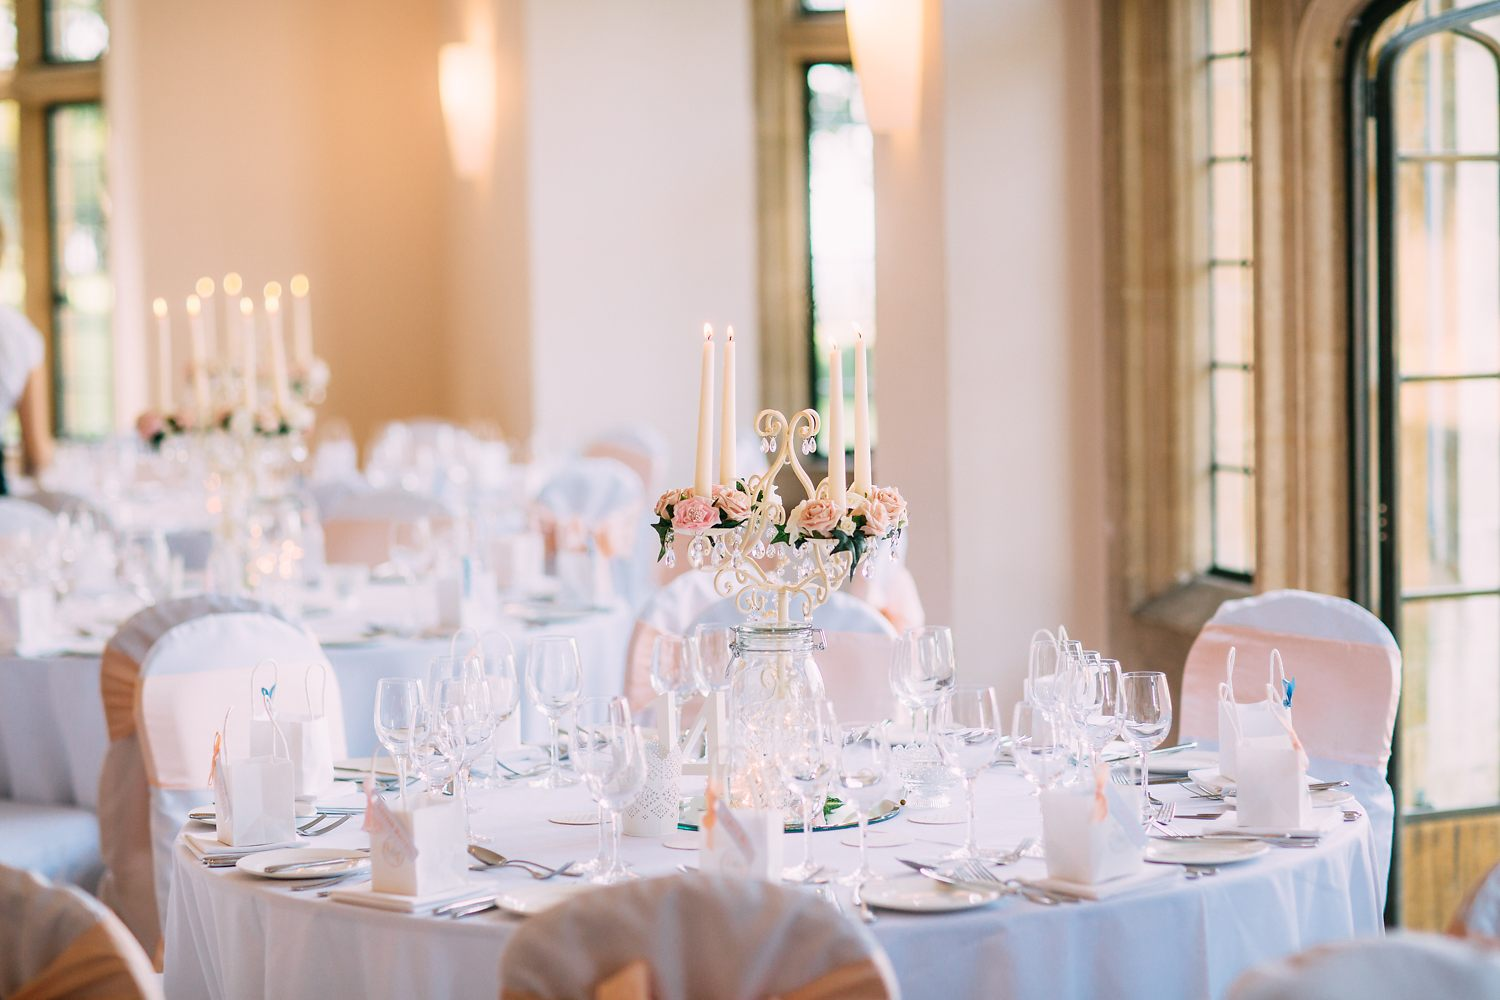 elegant wedding decorations in coombe lodge